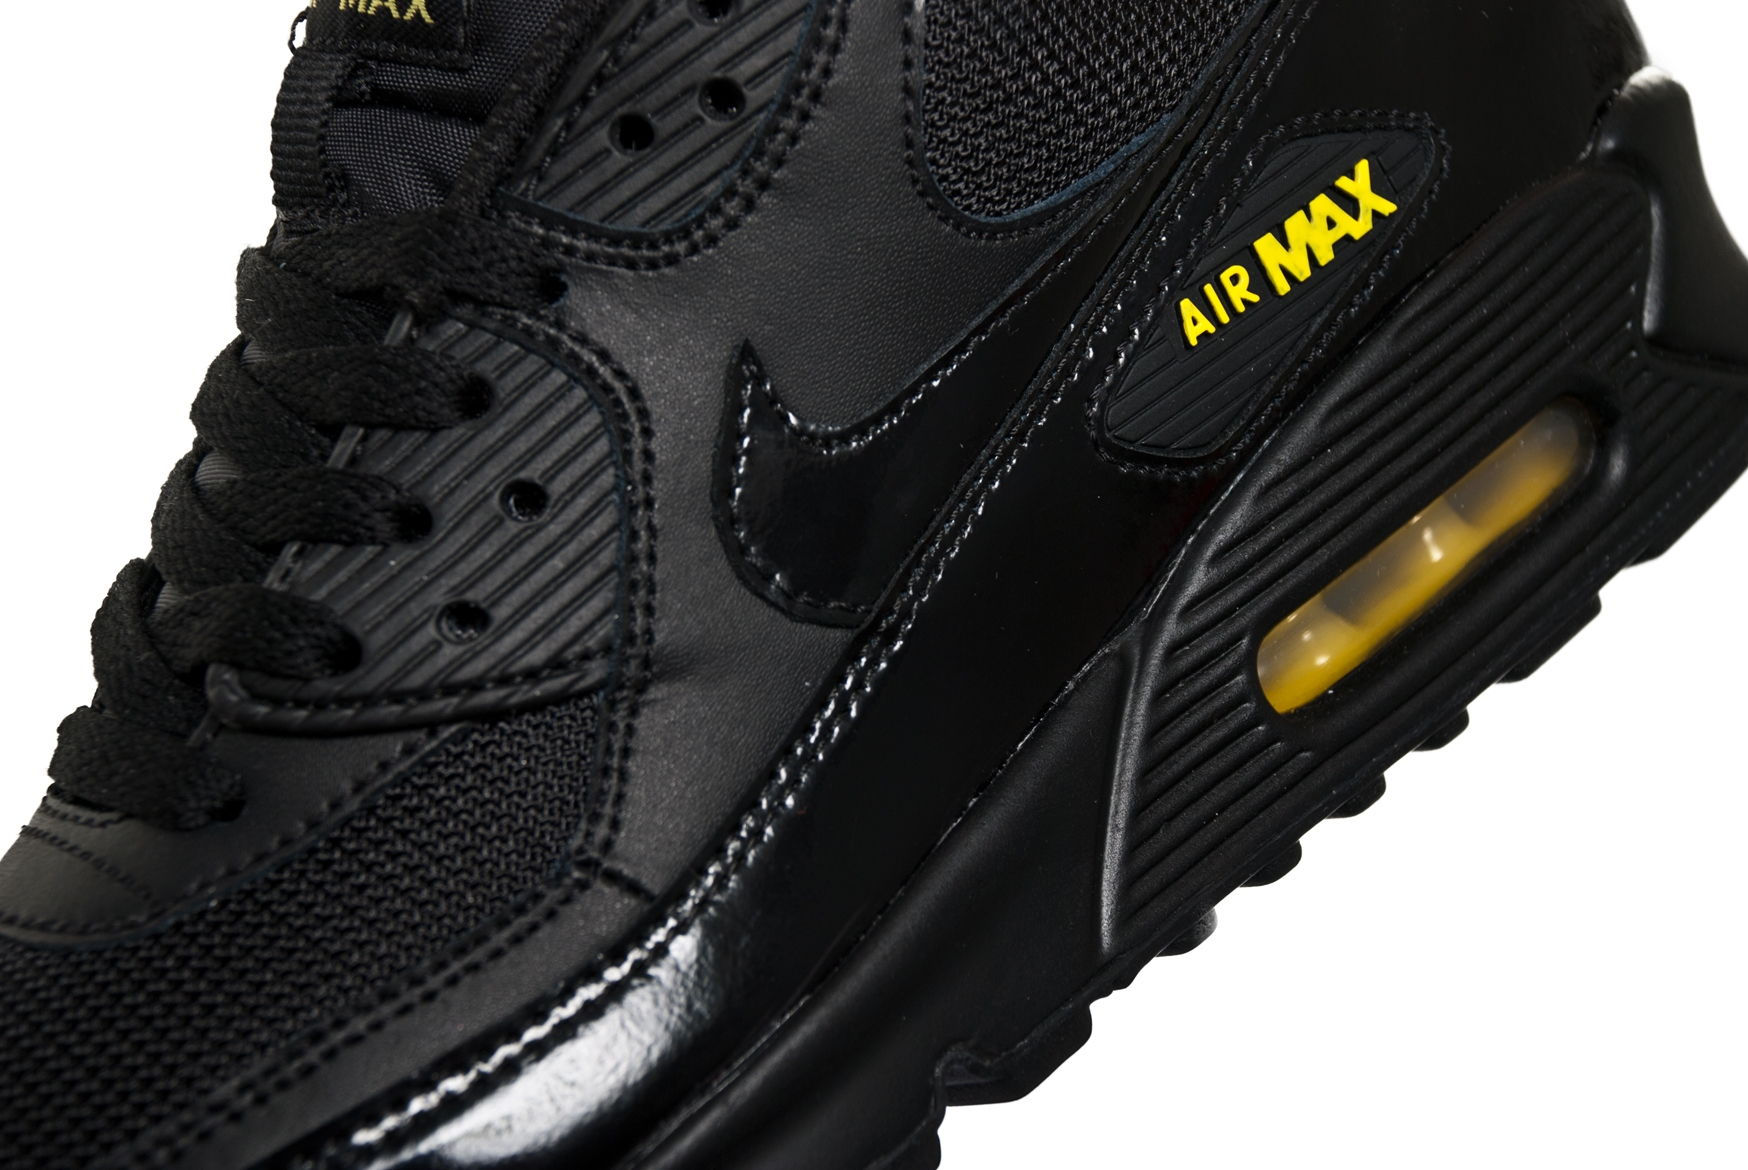 Nike Air Max 90 BlackBlack Golden Sash